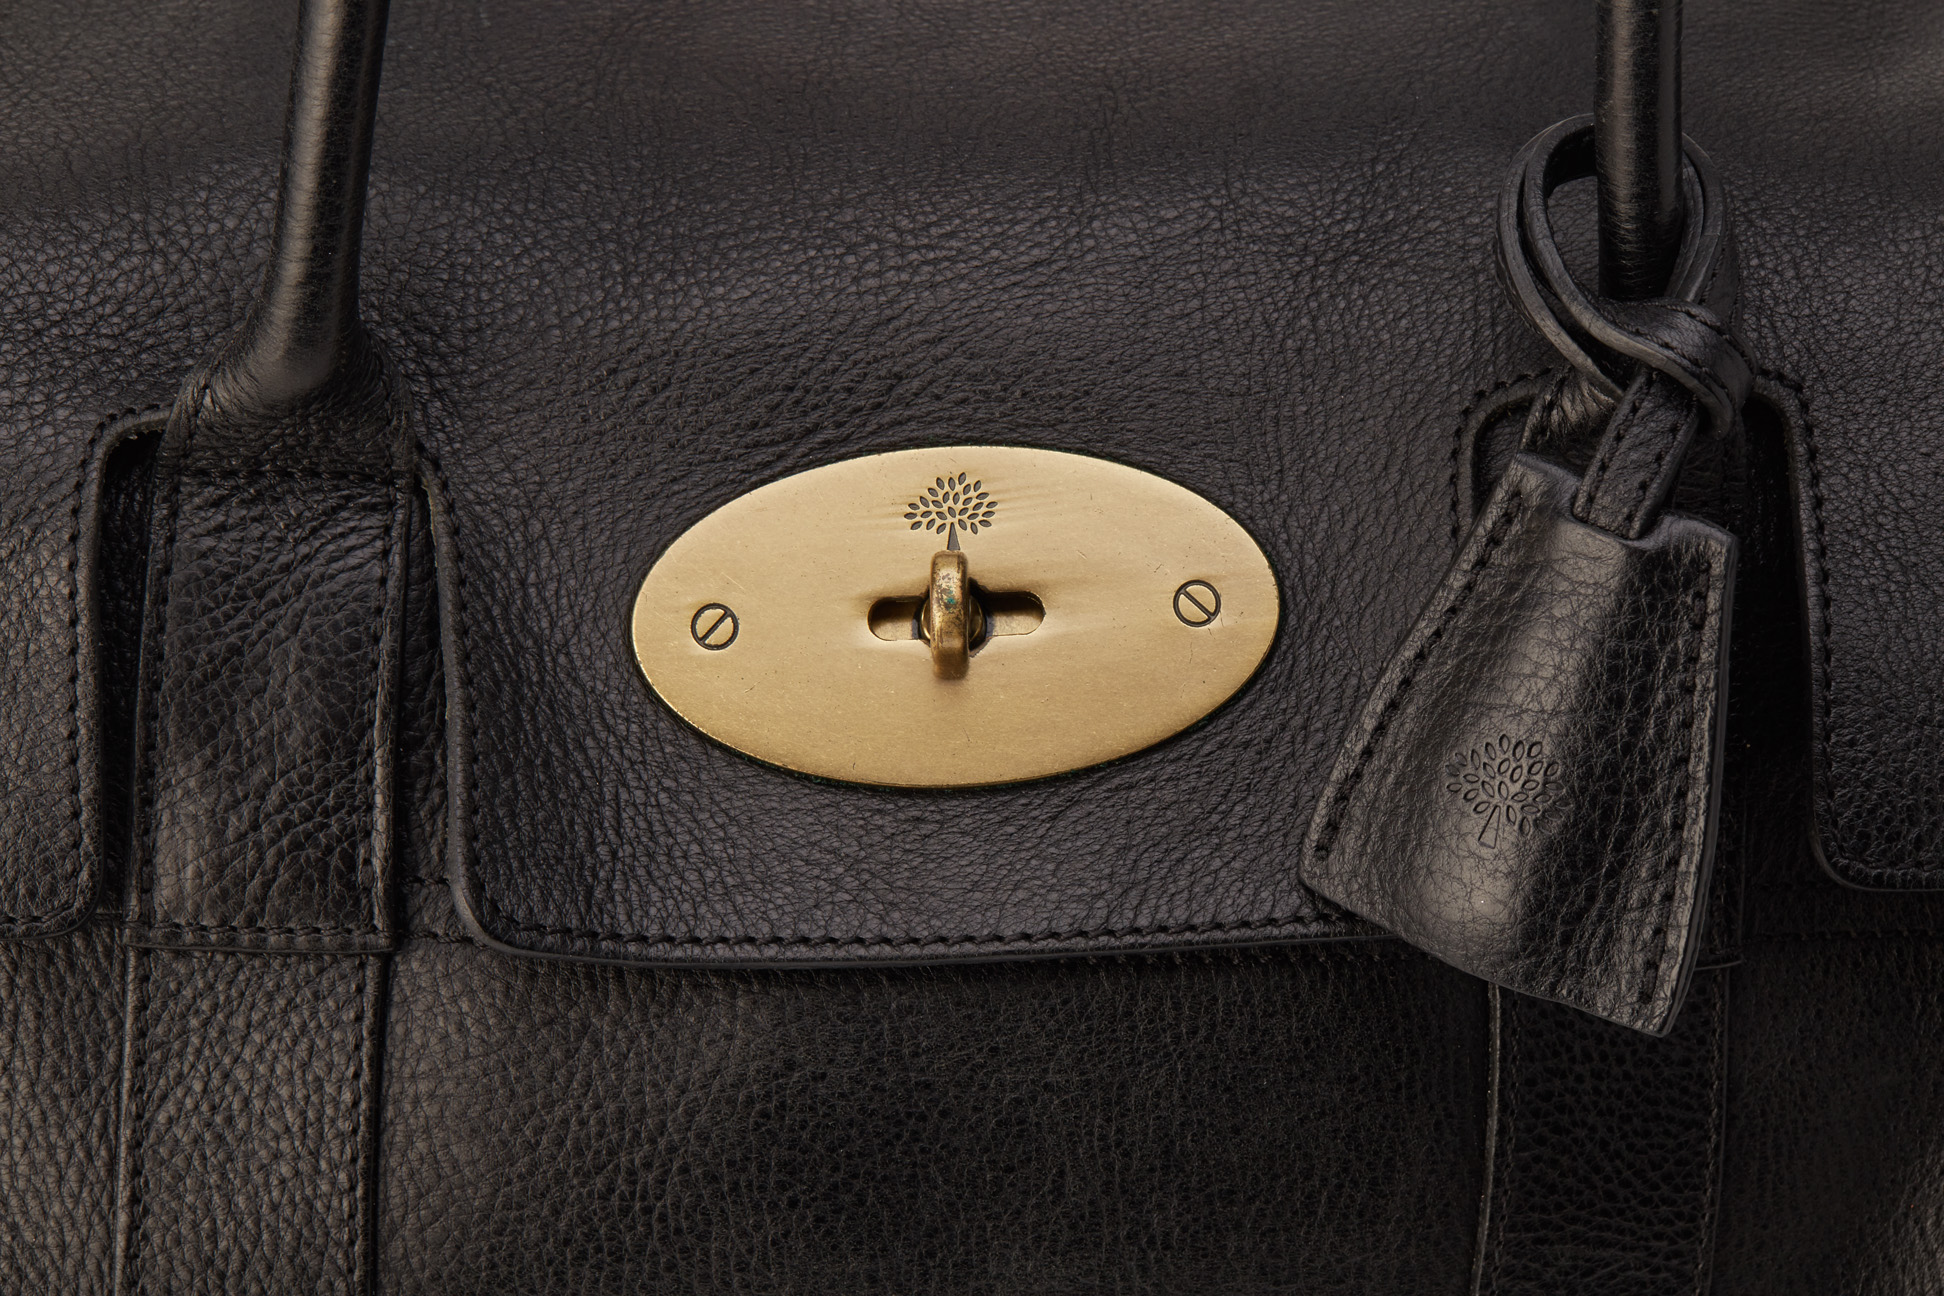 A MULBERRY BLACK BAYSWATER LEATHER TOTE BAG - Image 2 of 4